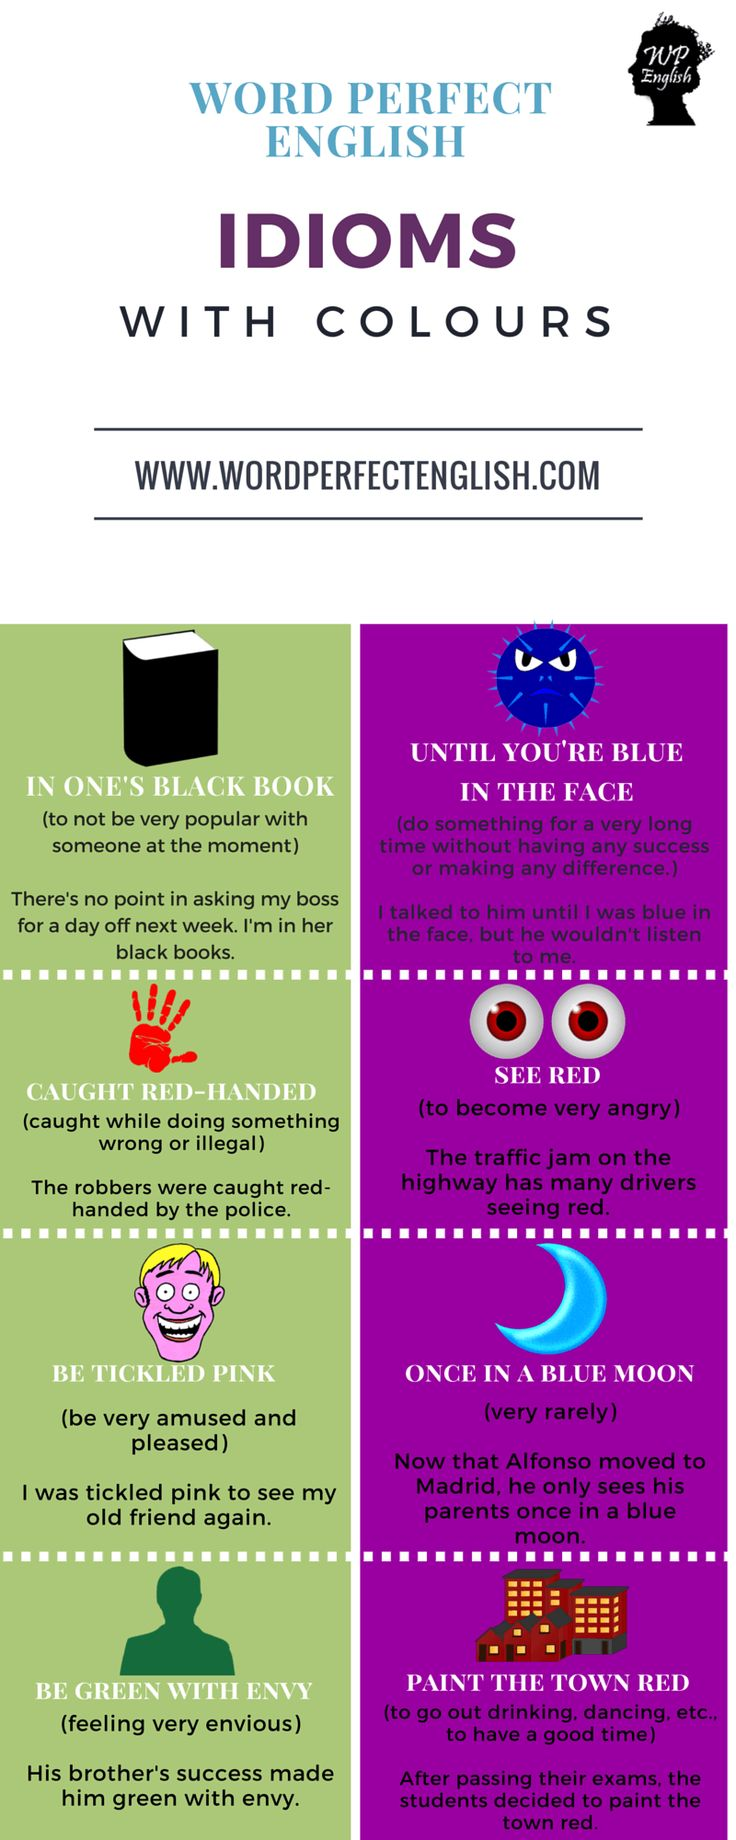 Idioms with Colours 2/2